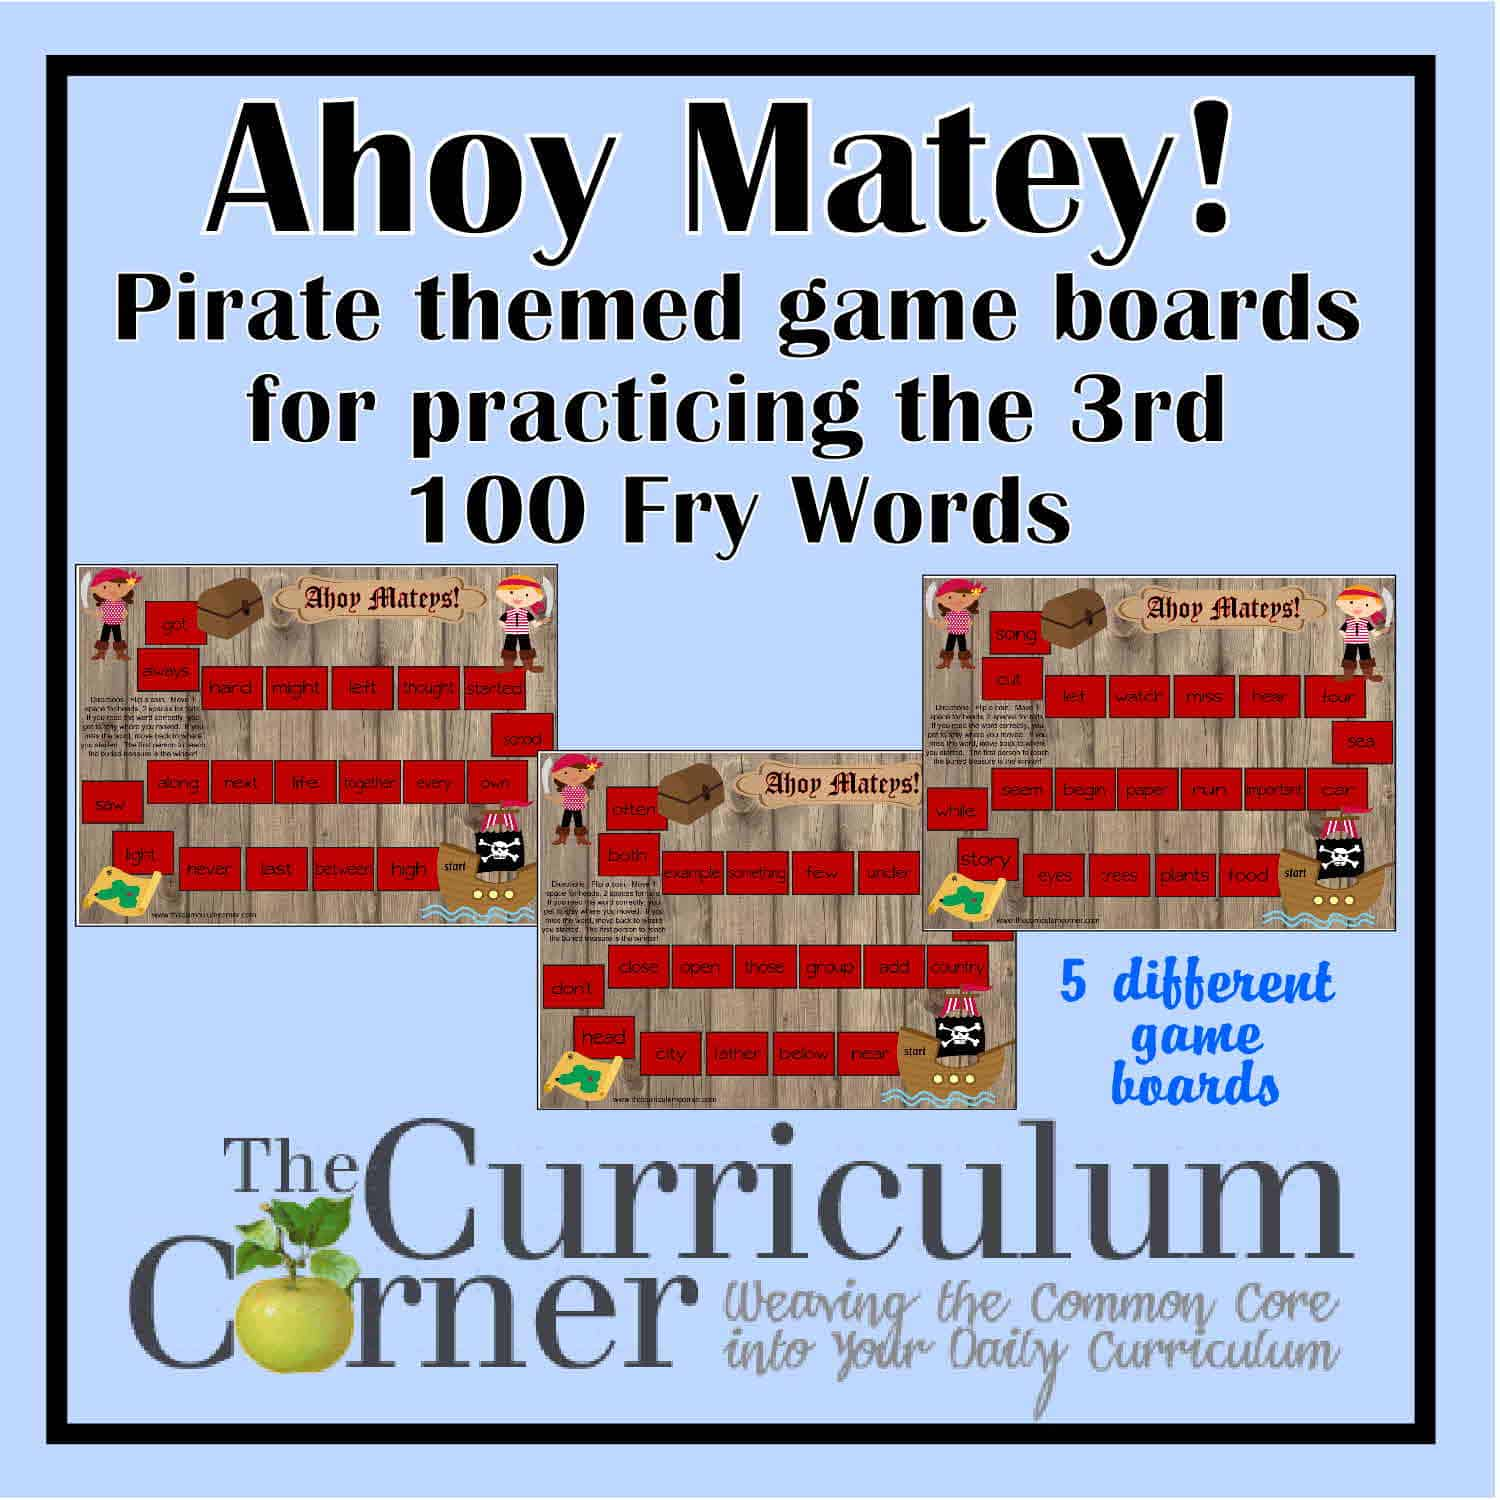 Ahoy Matey! 3rd Hundred Fry Words Games